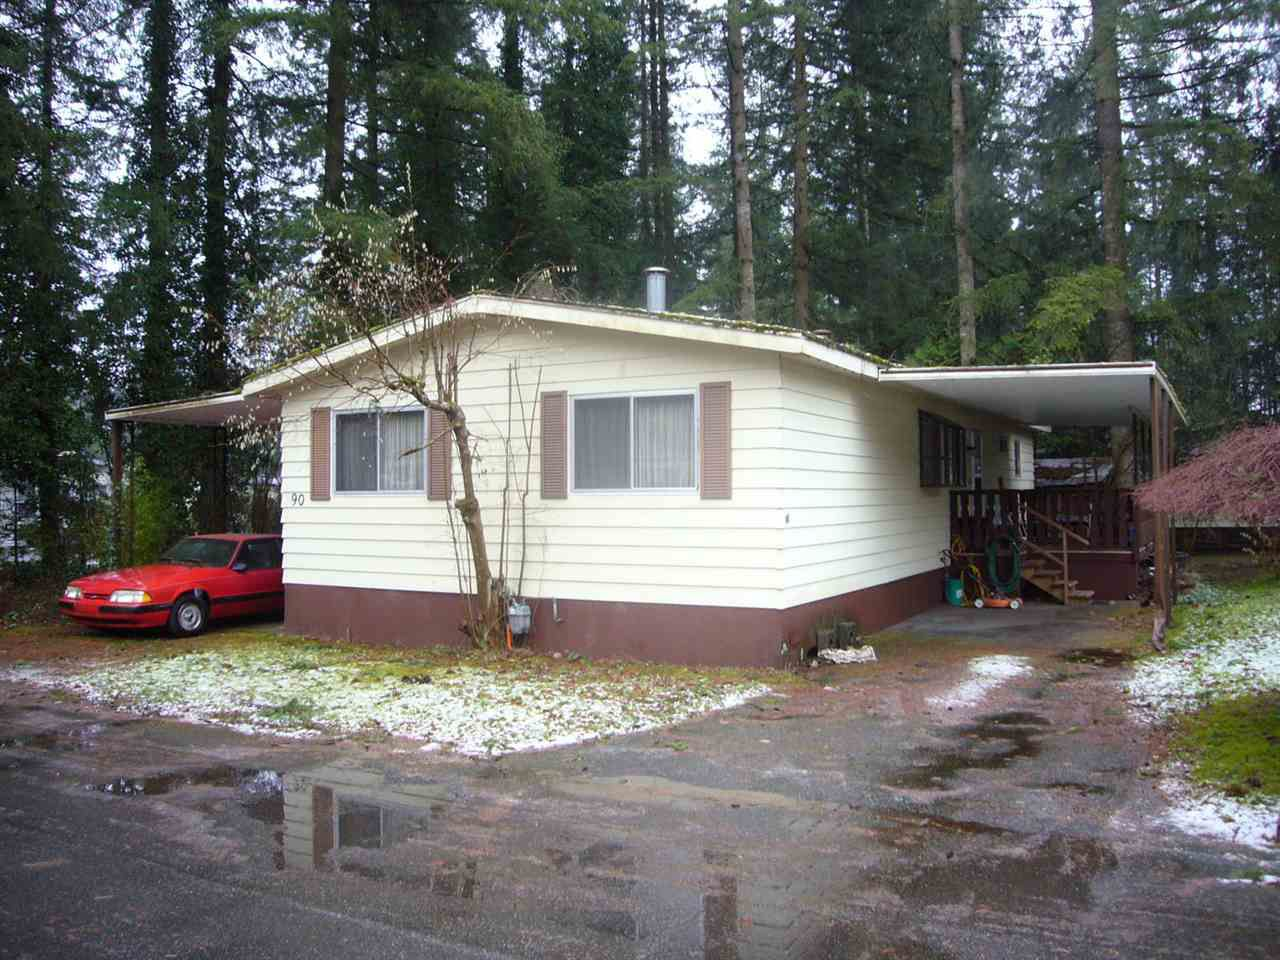 """Main Photo: 90 20071 24 Avenue in Langley: Brookswood Langley Manufactured Home for sale in """"FERNRIDGE"""" : MLS®# R2023941"""